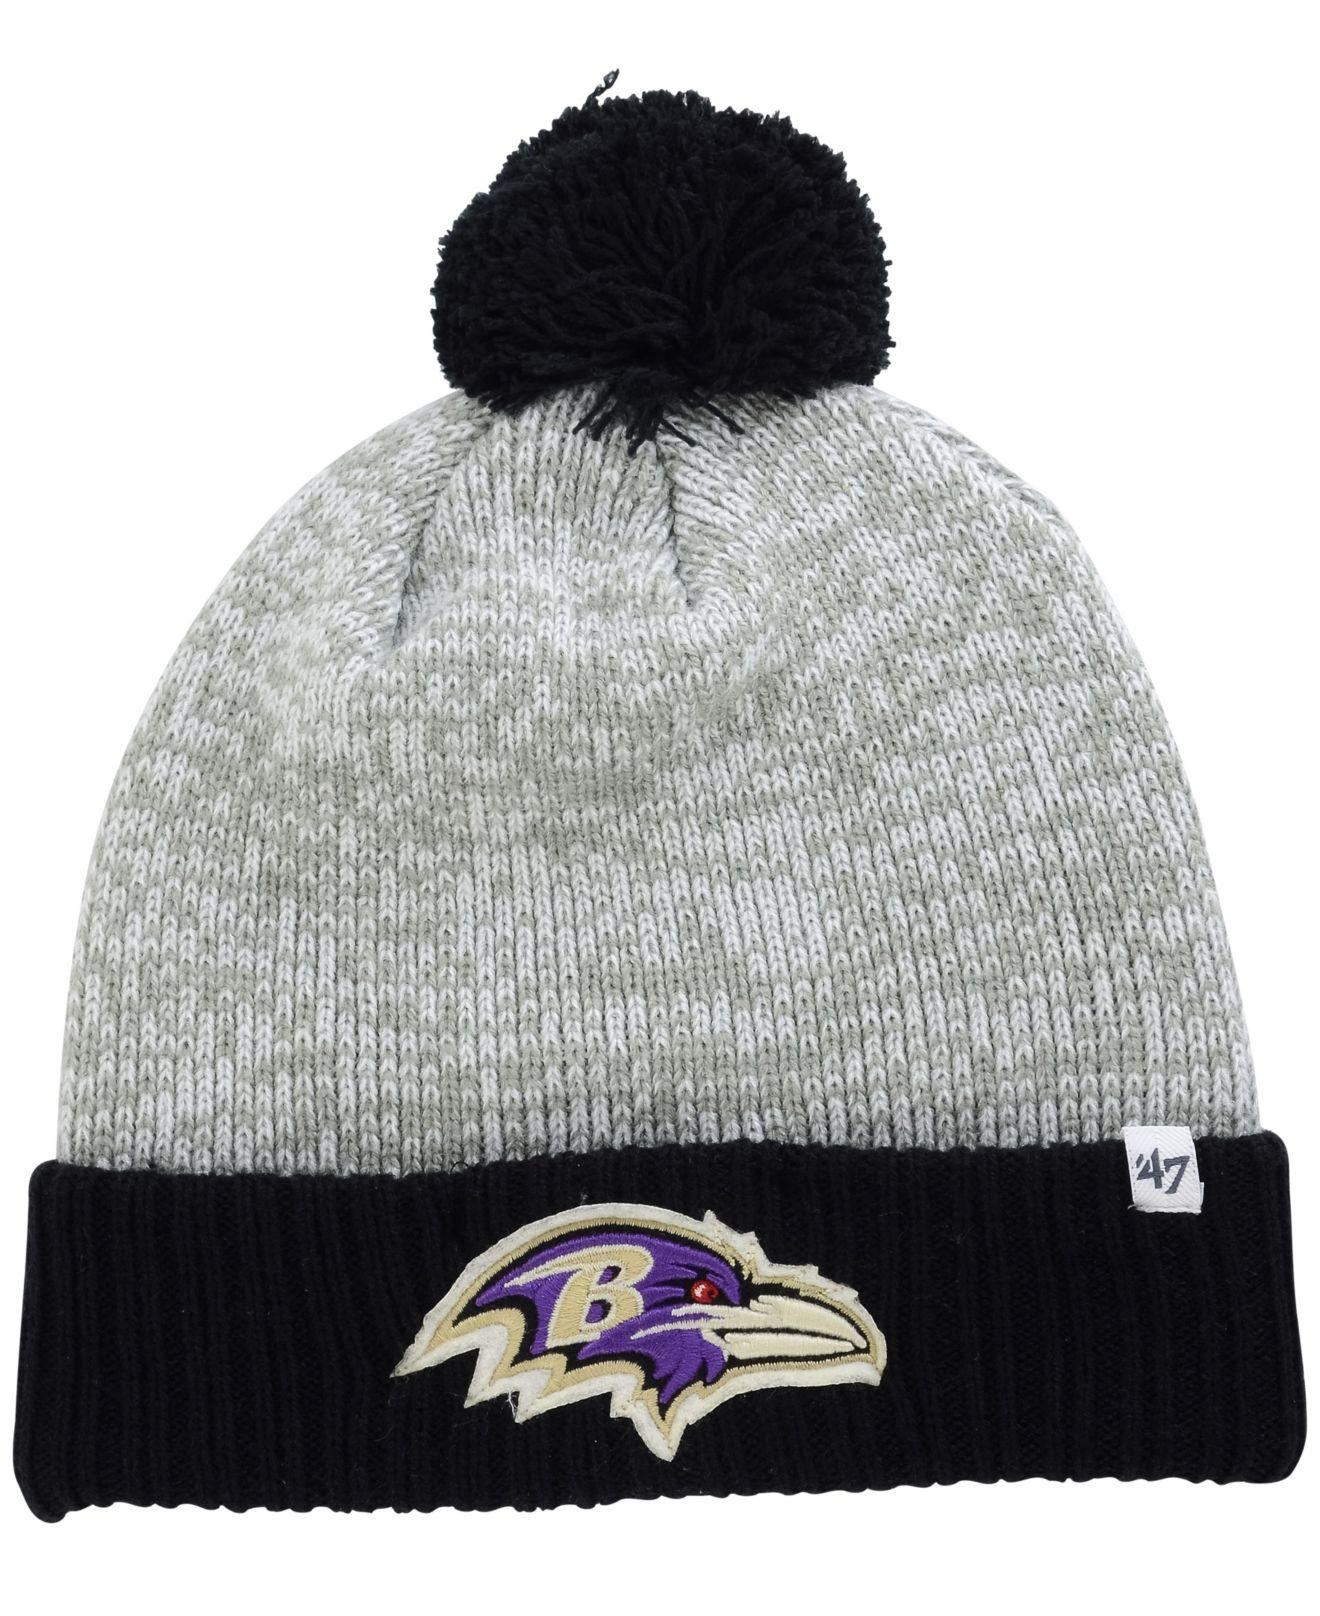 Lyst - 47 Brand Baltimore Ravens Coverage Knit Hat in Black d96a500f7